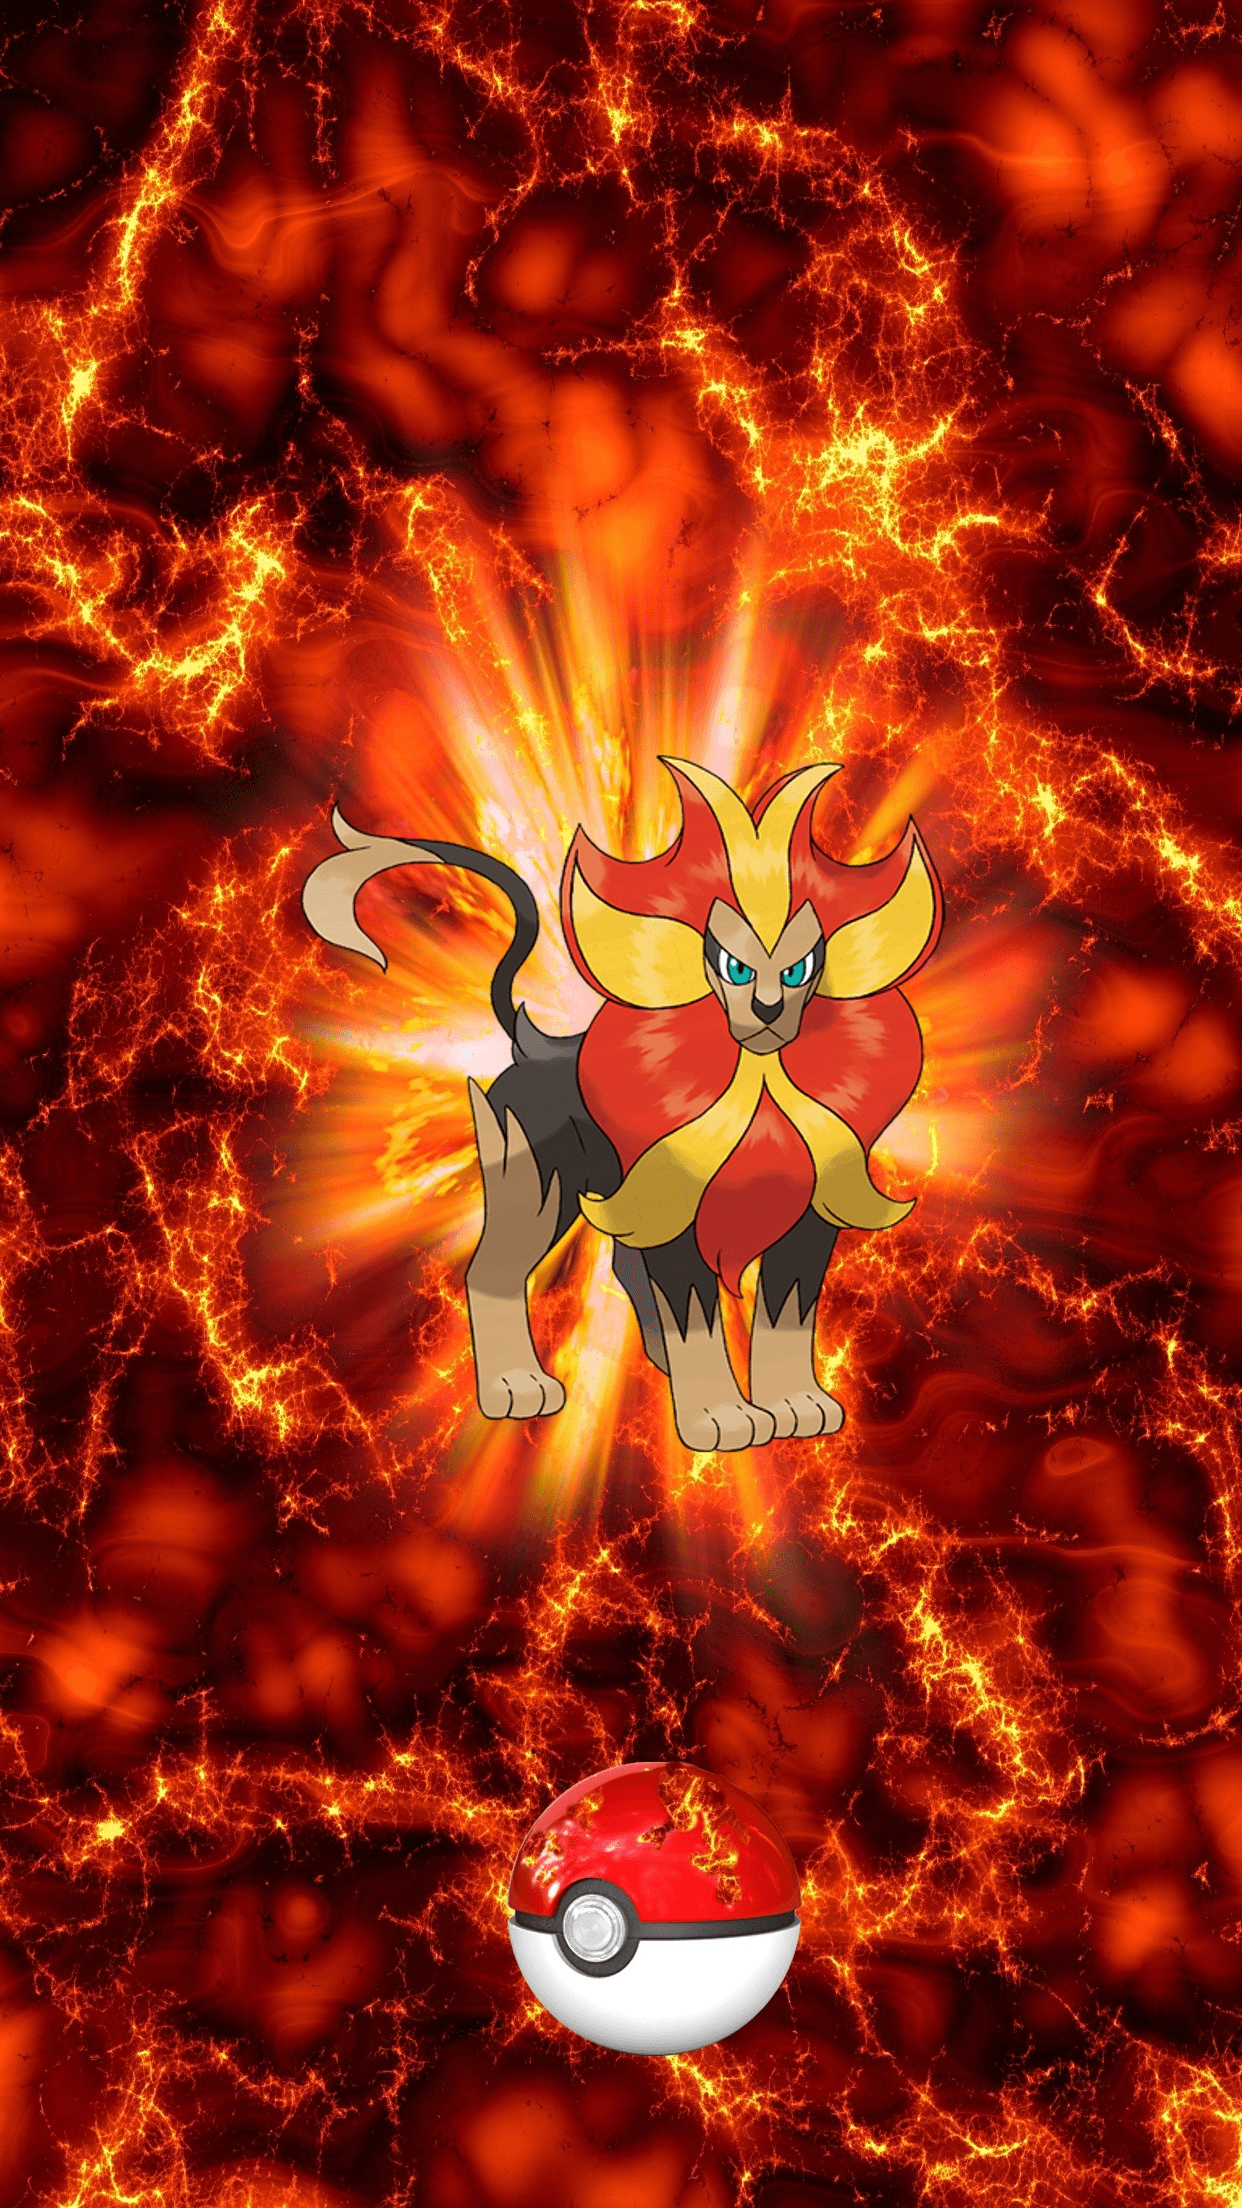 668 Fire Pokeball Pyroar 142 Kaenjishi 17 Litleo | Wallpaper